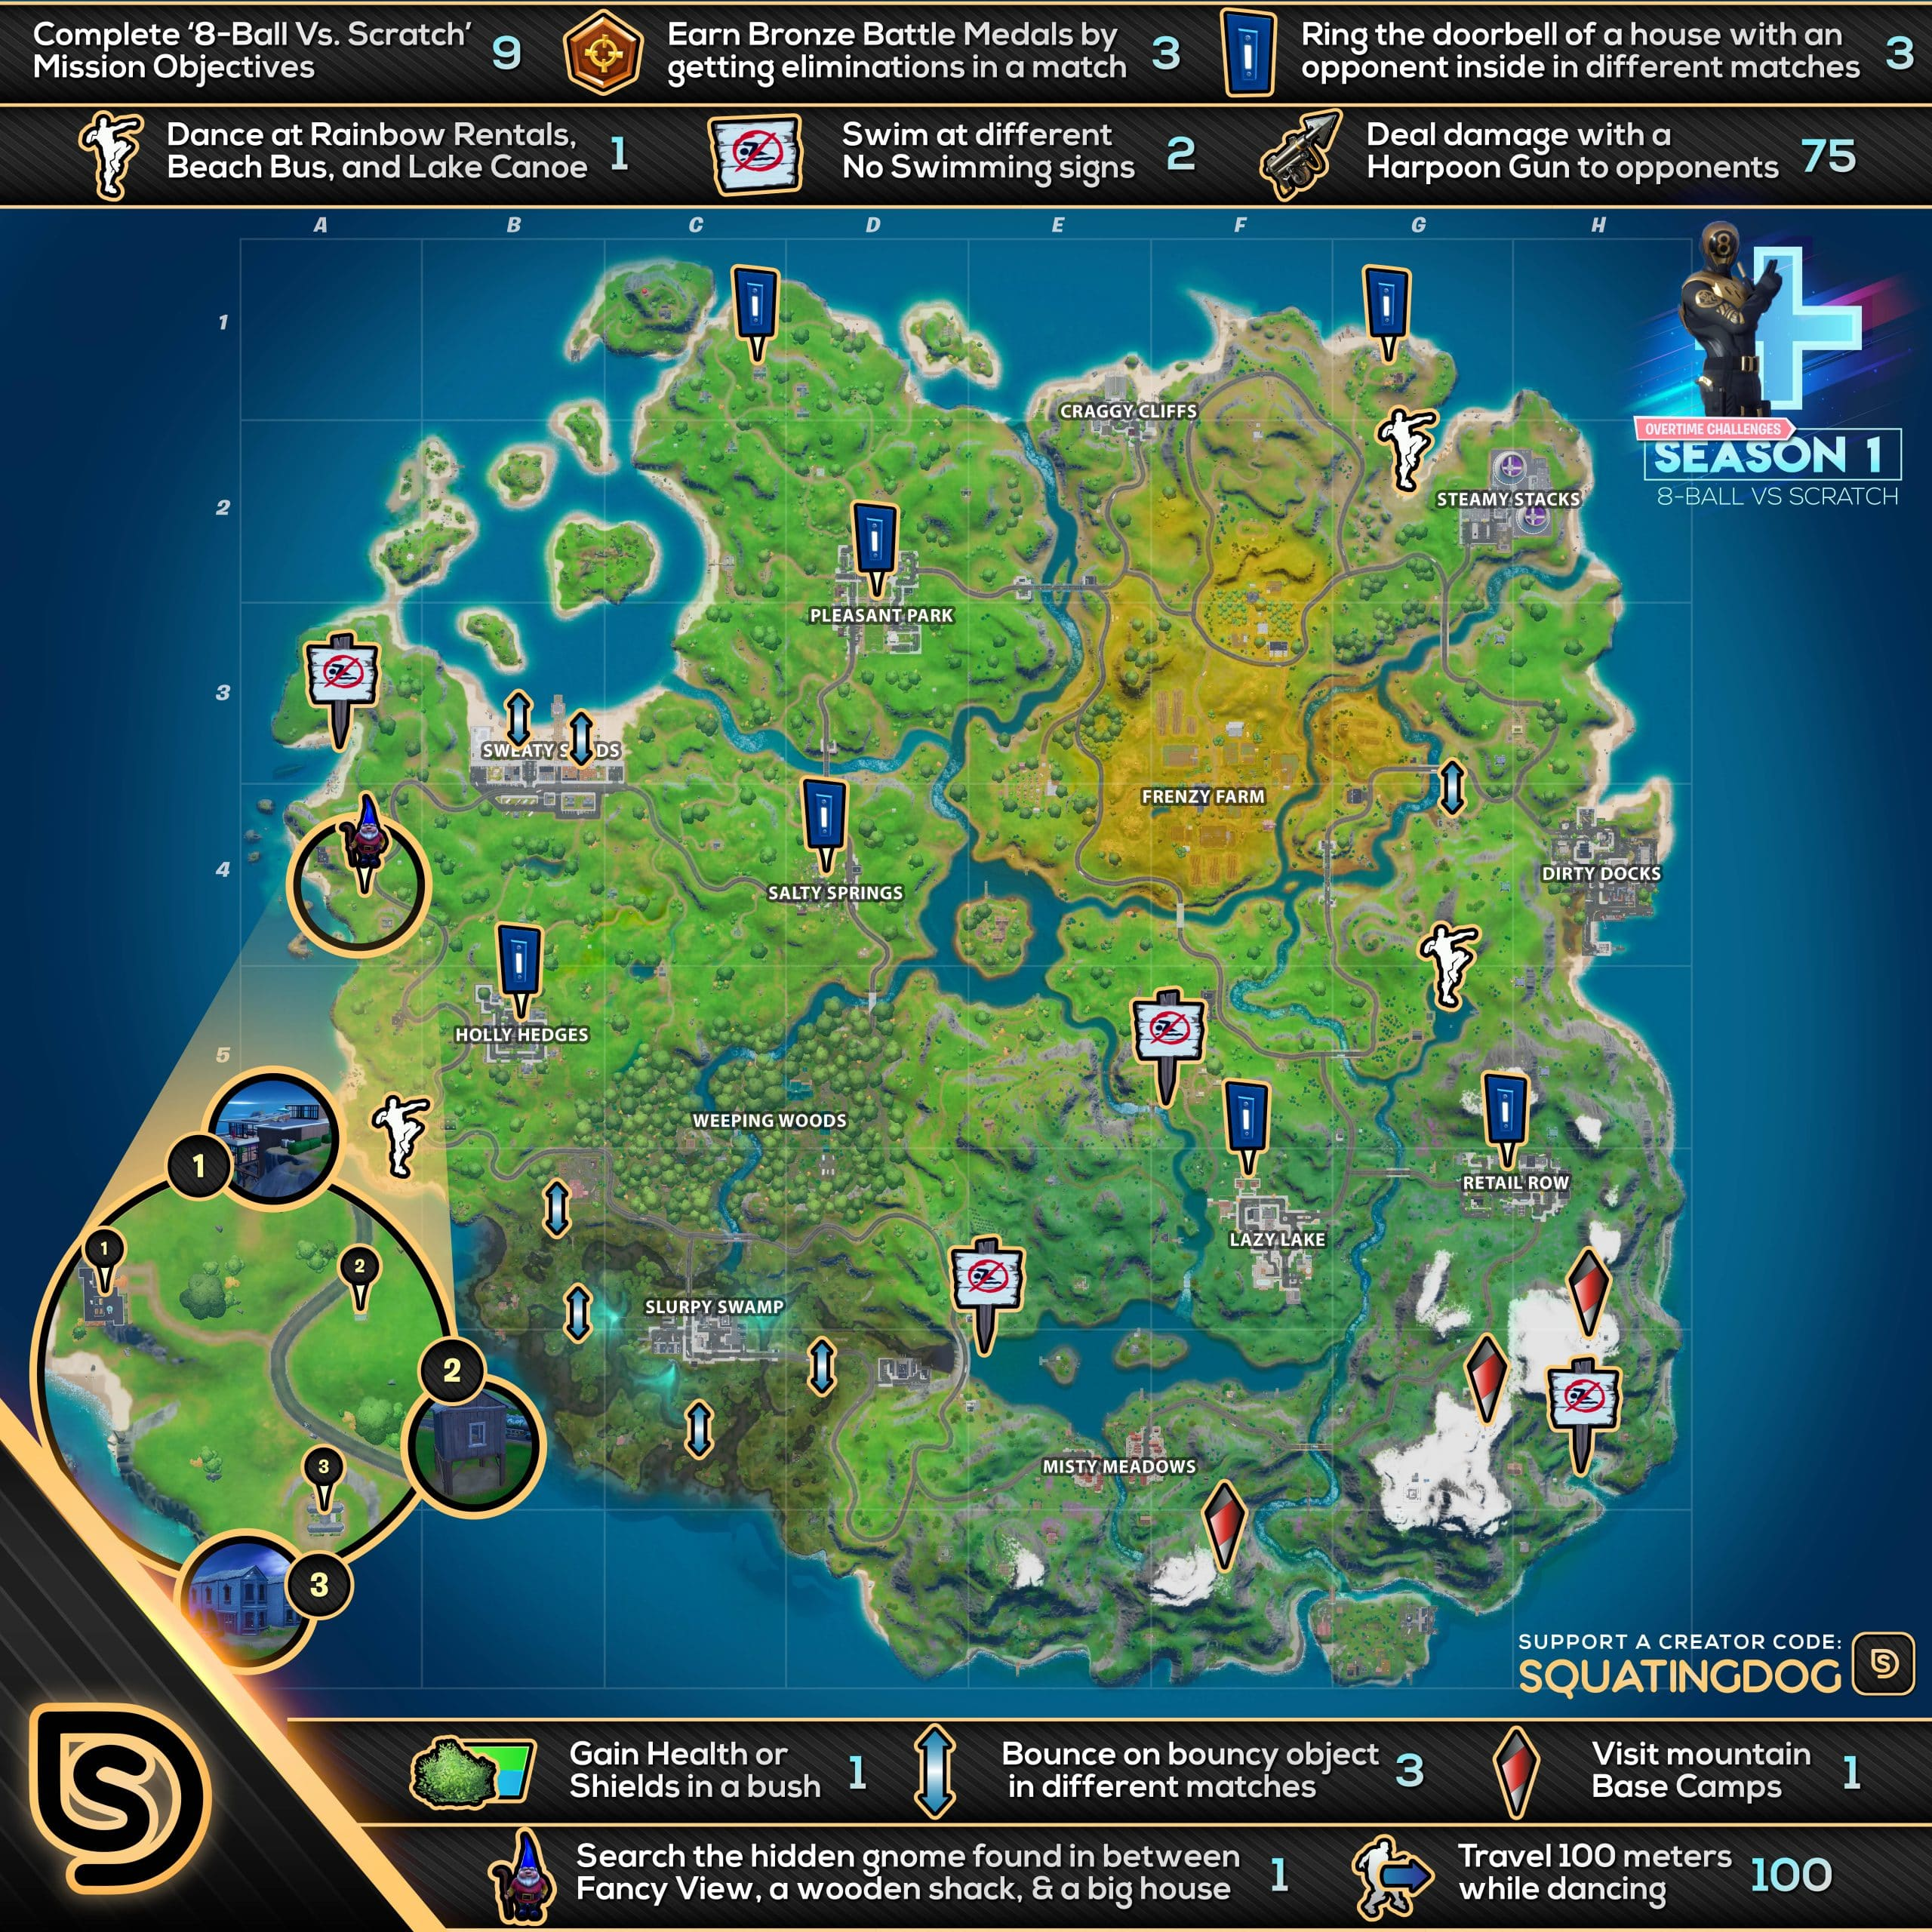 Fortnite Season 11 Überstunden Herausforderungen - 8-Ball Vs Scratch Cheat Sheet